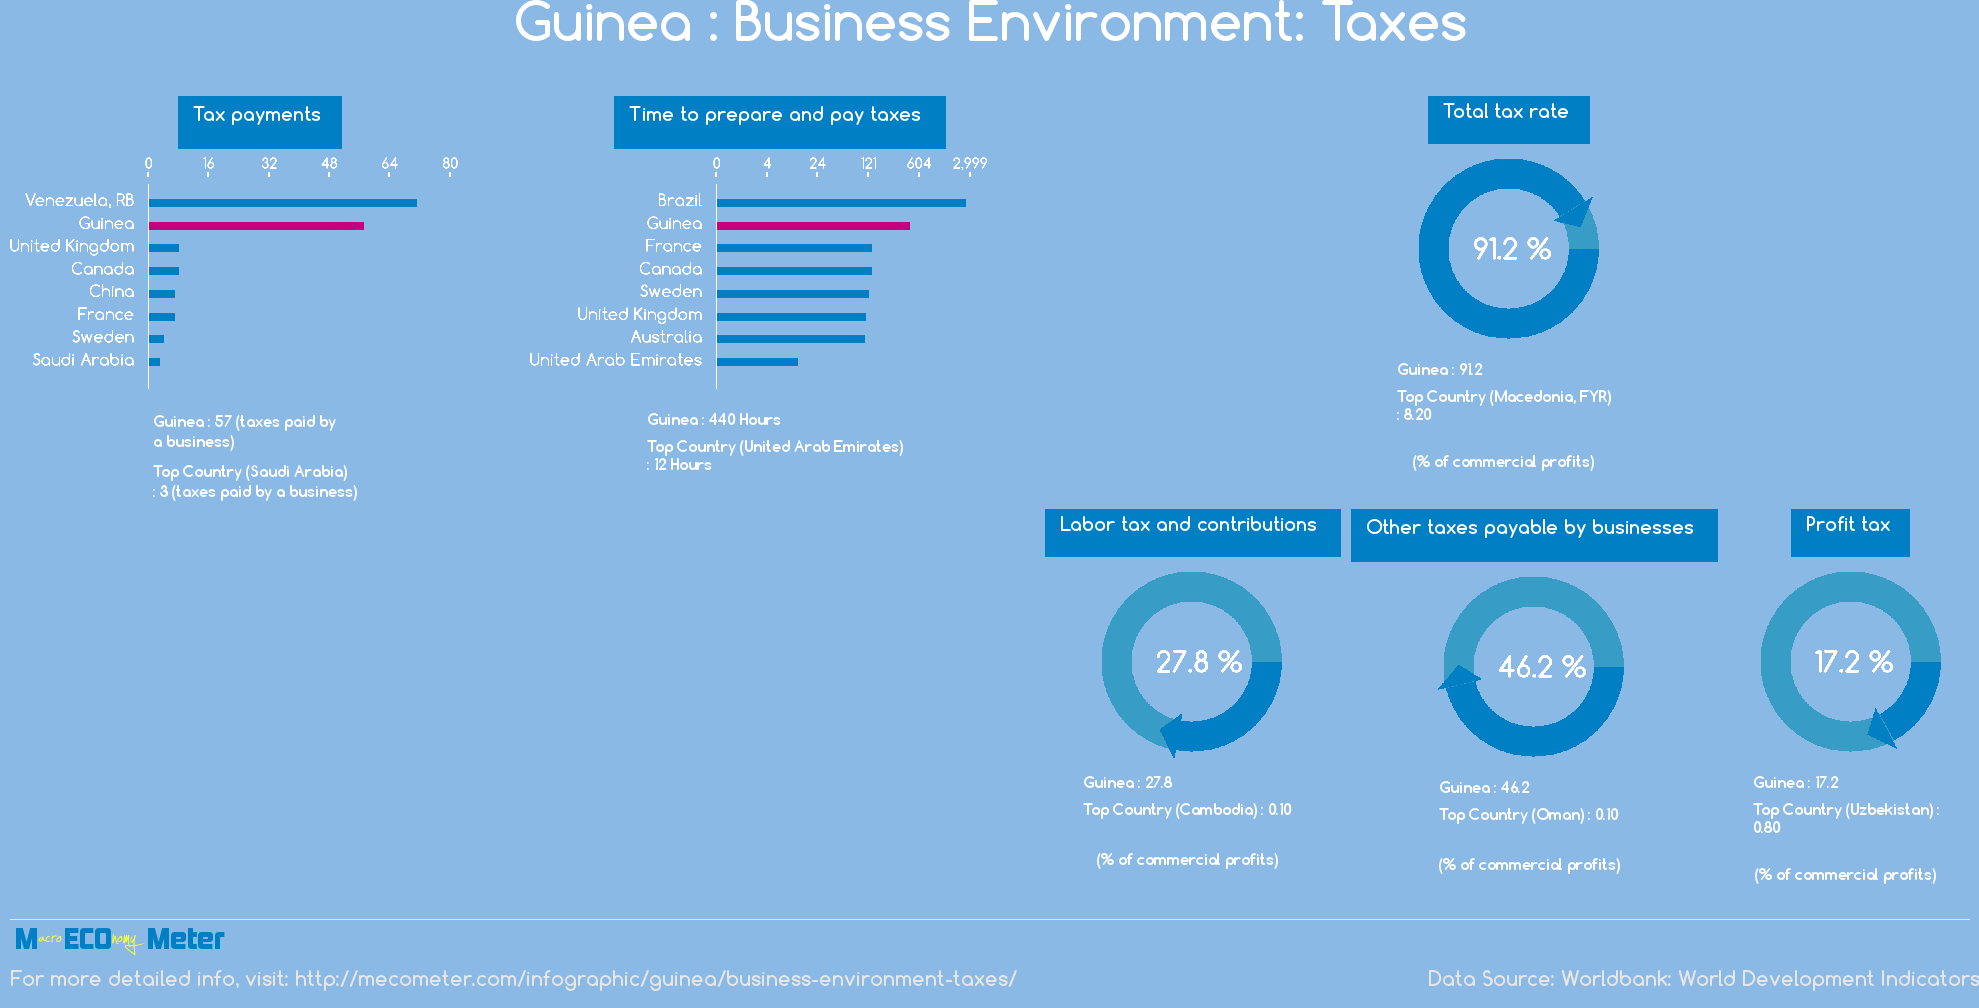 Guinea : Business Environment: Taxes